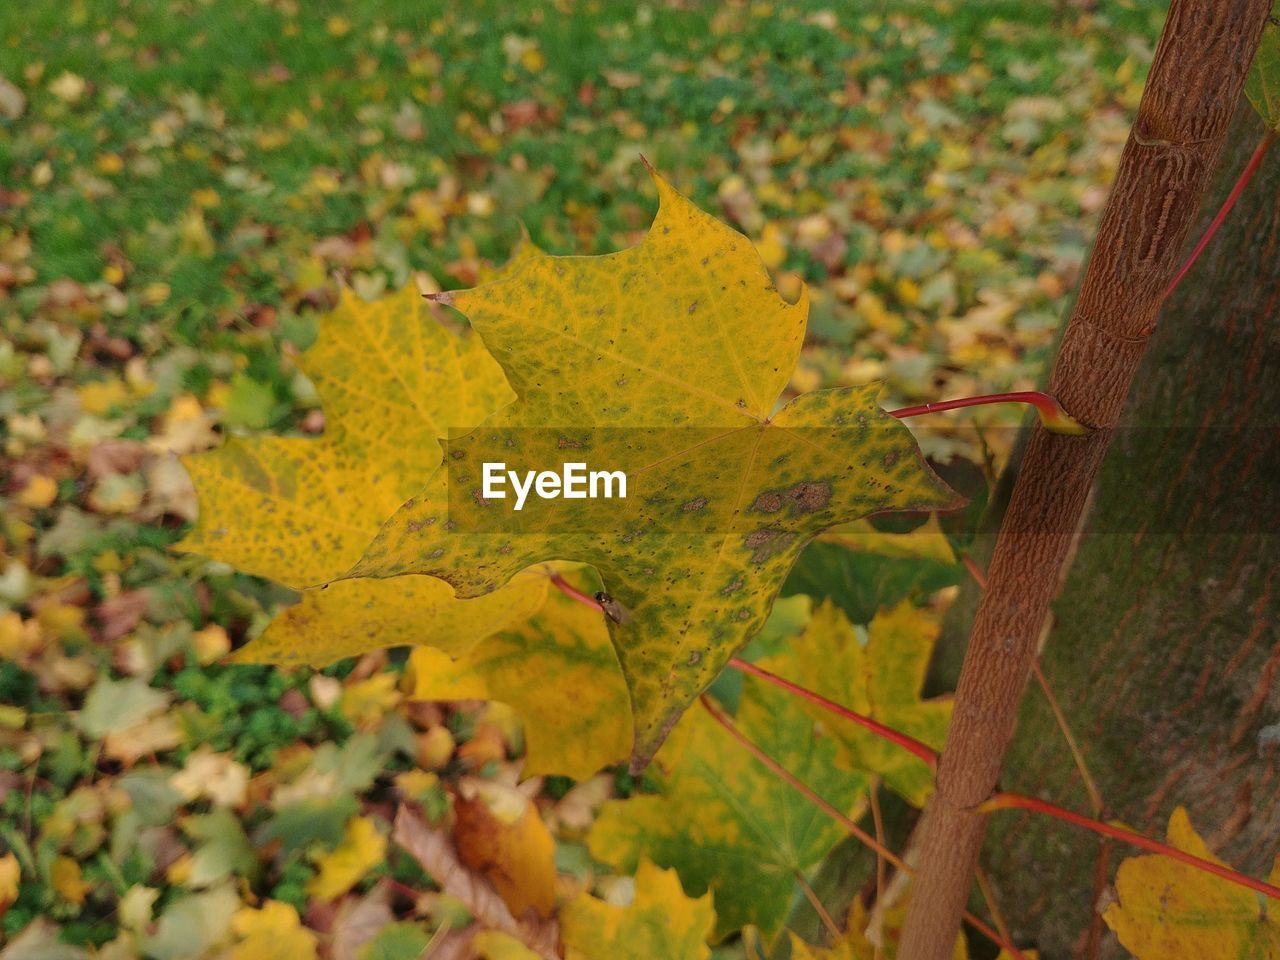 leaf, autumn, nature, growth, no people, tranquility, tree, day, outdoors, change, focus on foreground, beauty in nature, field, scenics, yellow, branch, close-up, maple